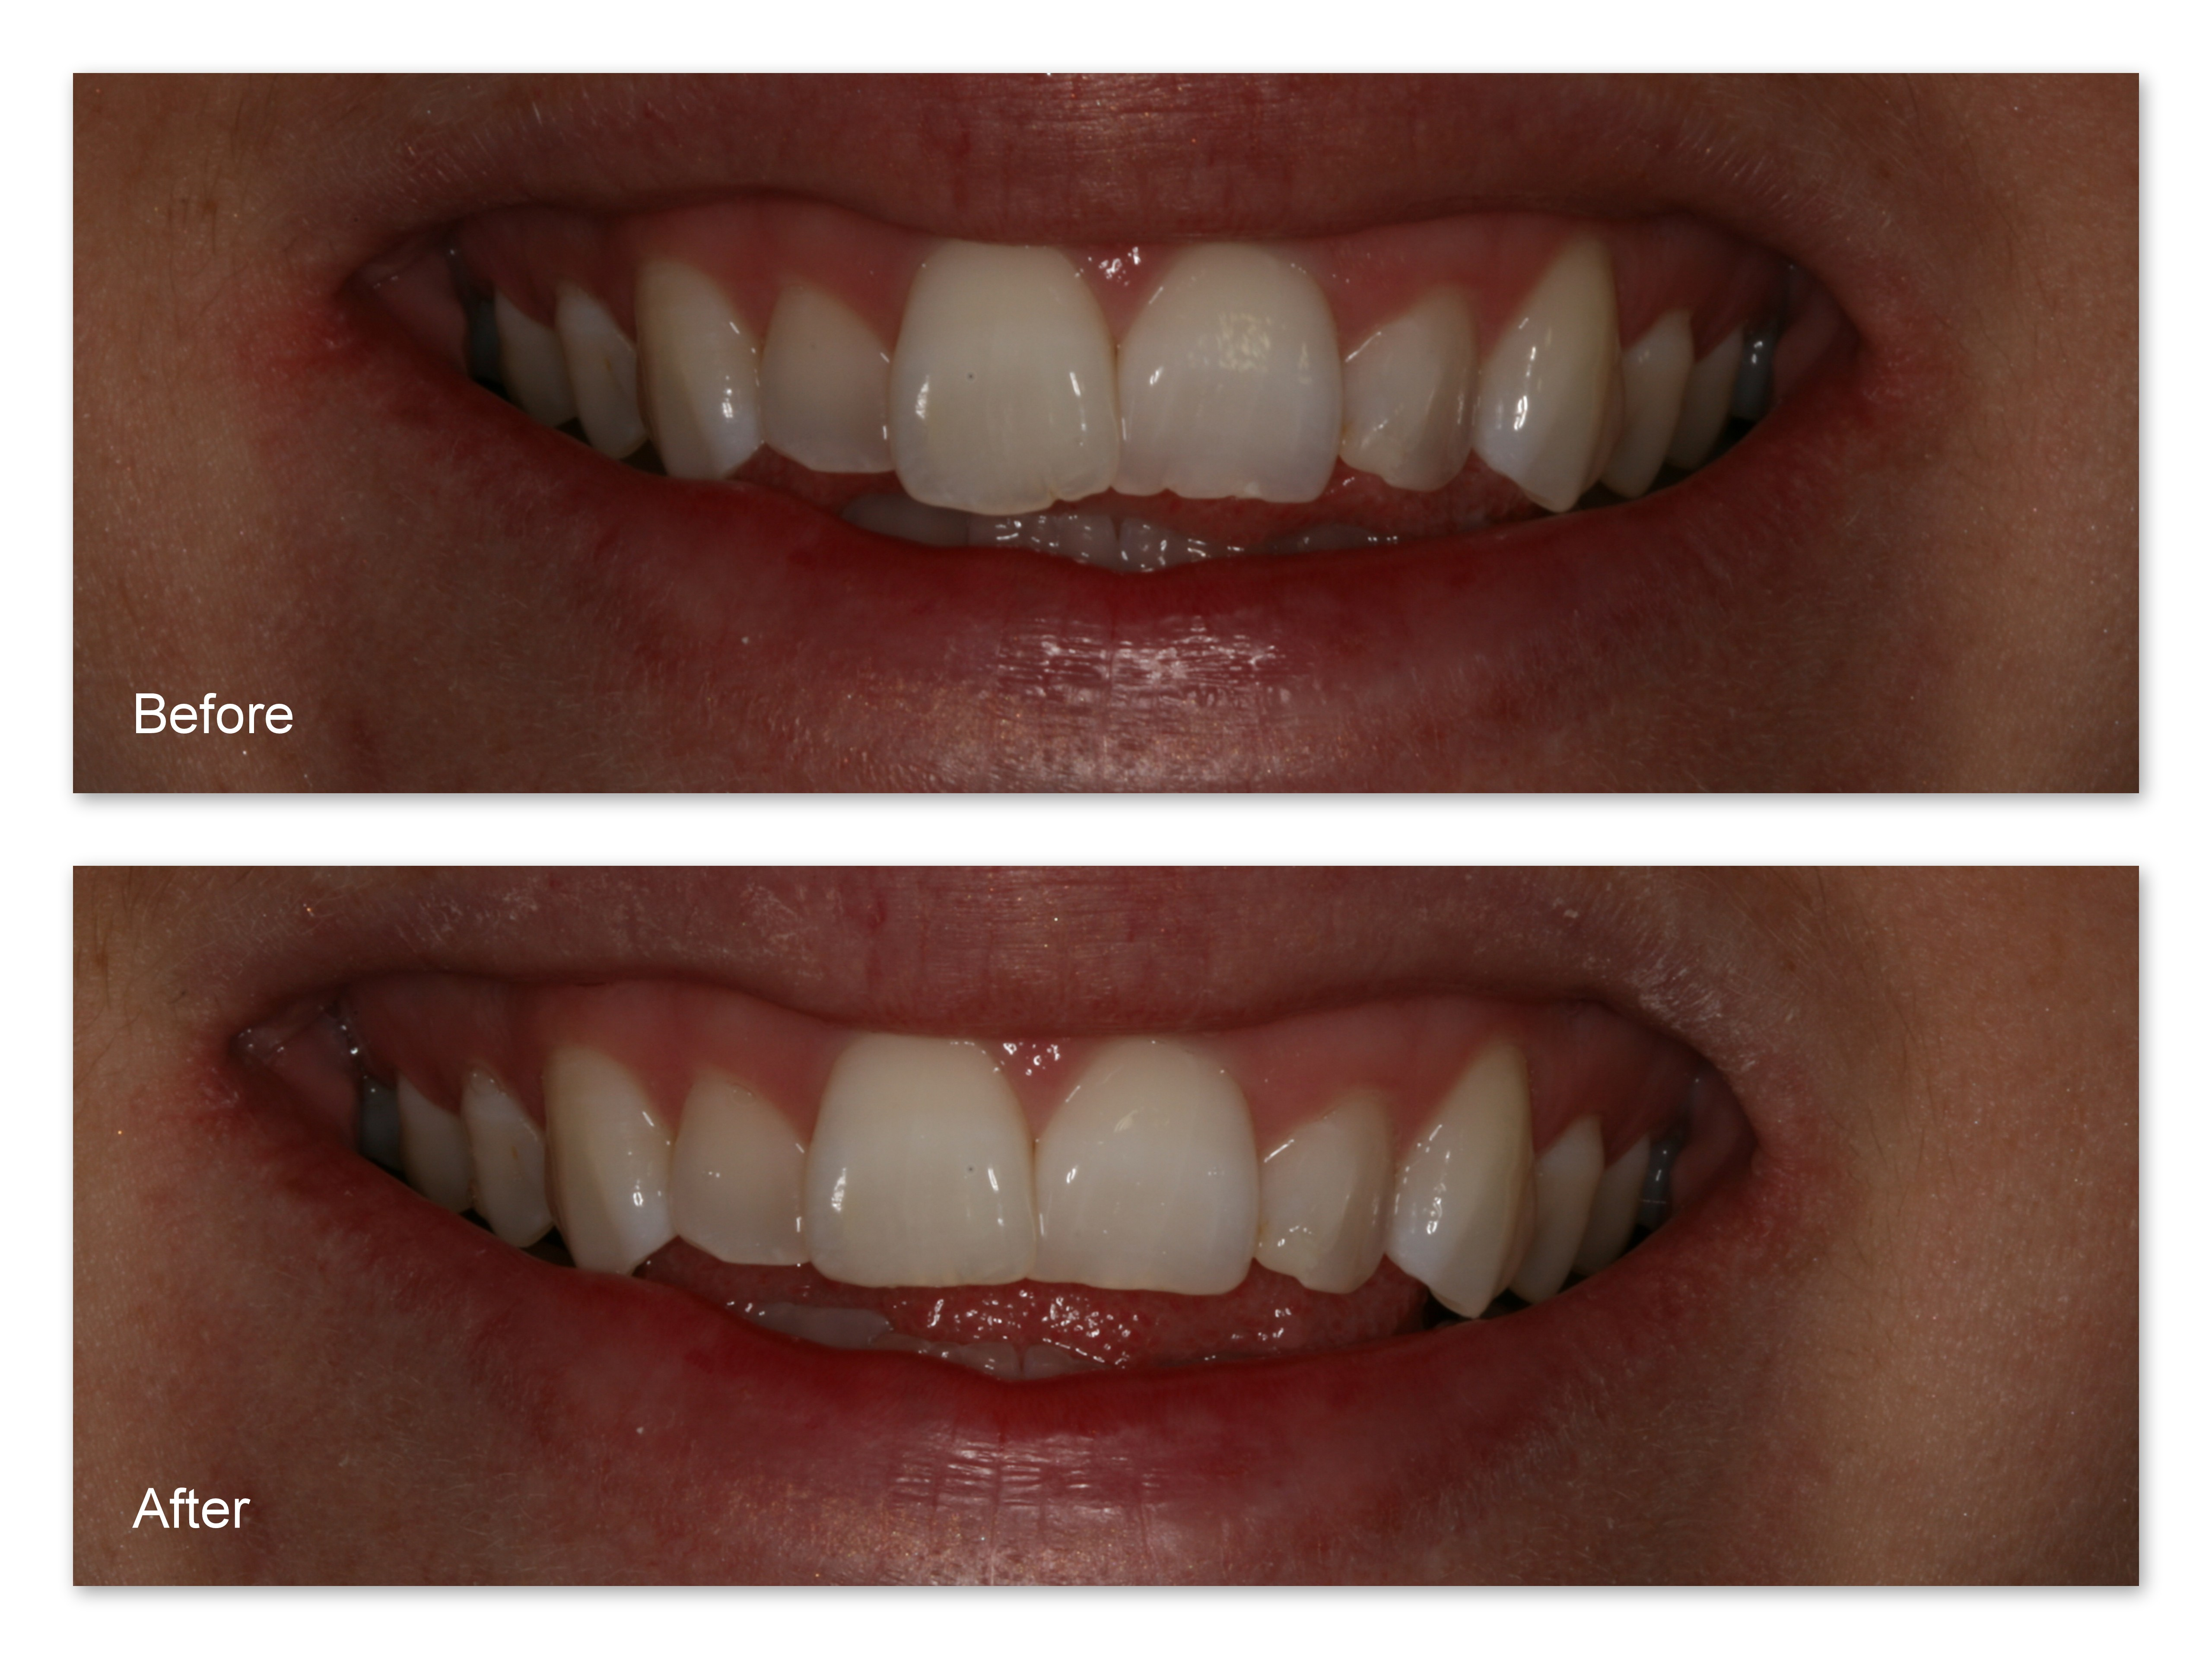 Before- This patient didn't like the shapes of his two front teeth. They were 'bumpy' and uneven. After- Dr. Jack Hosner of Portage, MI simply re-contoured these two front teeth to straighten them and blend them better with the rest of his teeth. This was done comfortably without anesthesia.